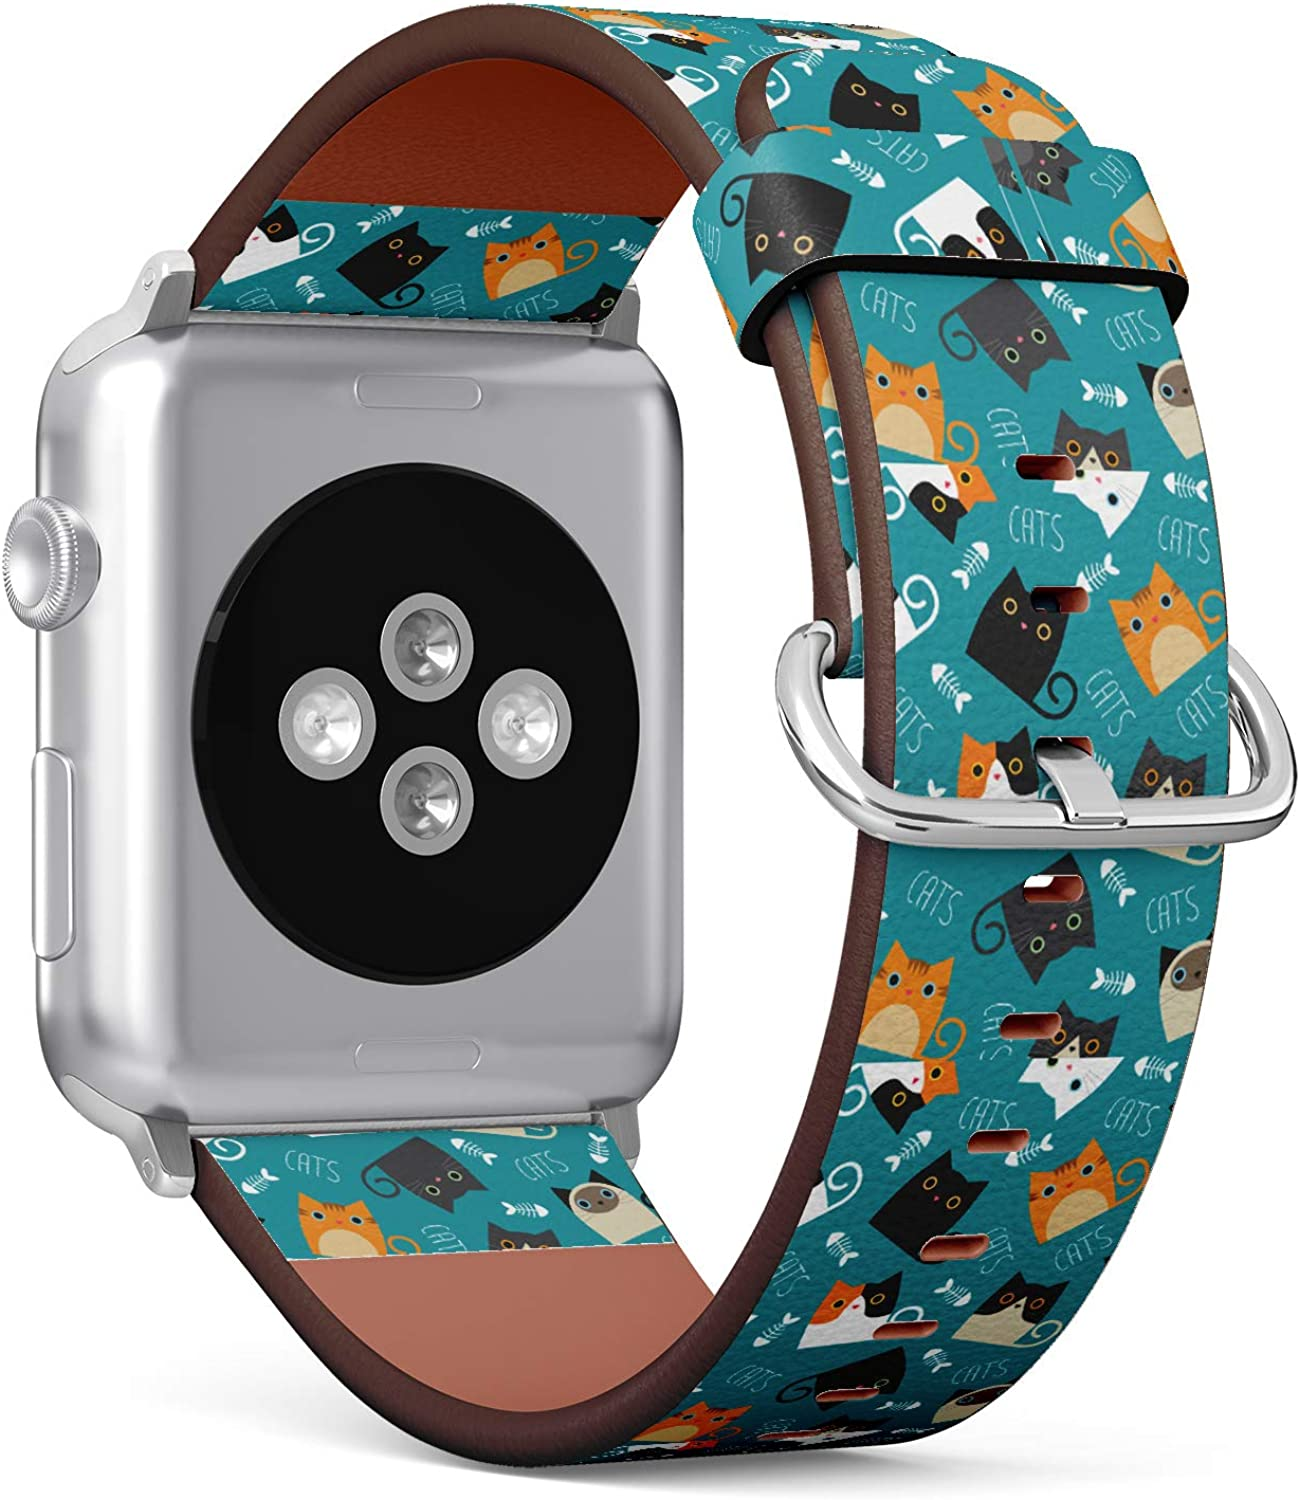 (Pattern of Cats and Fishbone in Teal Background) Patterned Leather Wristband Strap for Apple Watch Series 4/3/2/1 gen,Replacement for iWatch 38mm / 40mm Bands